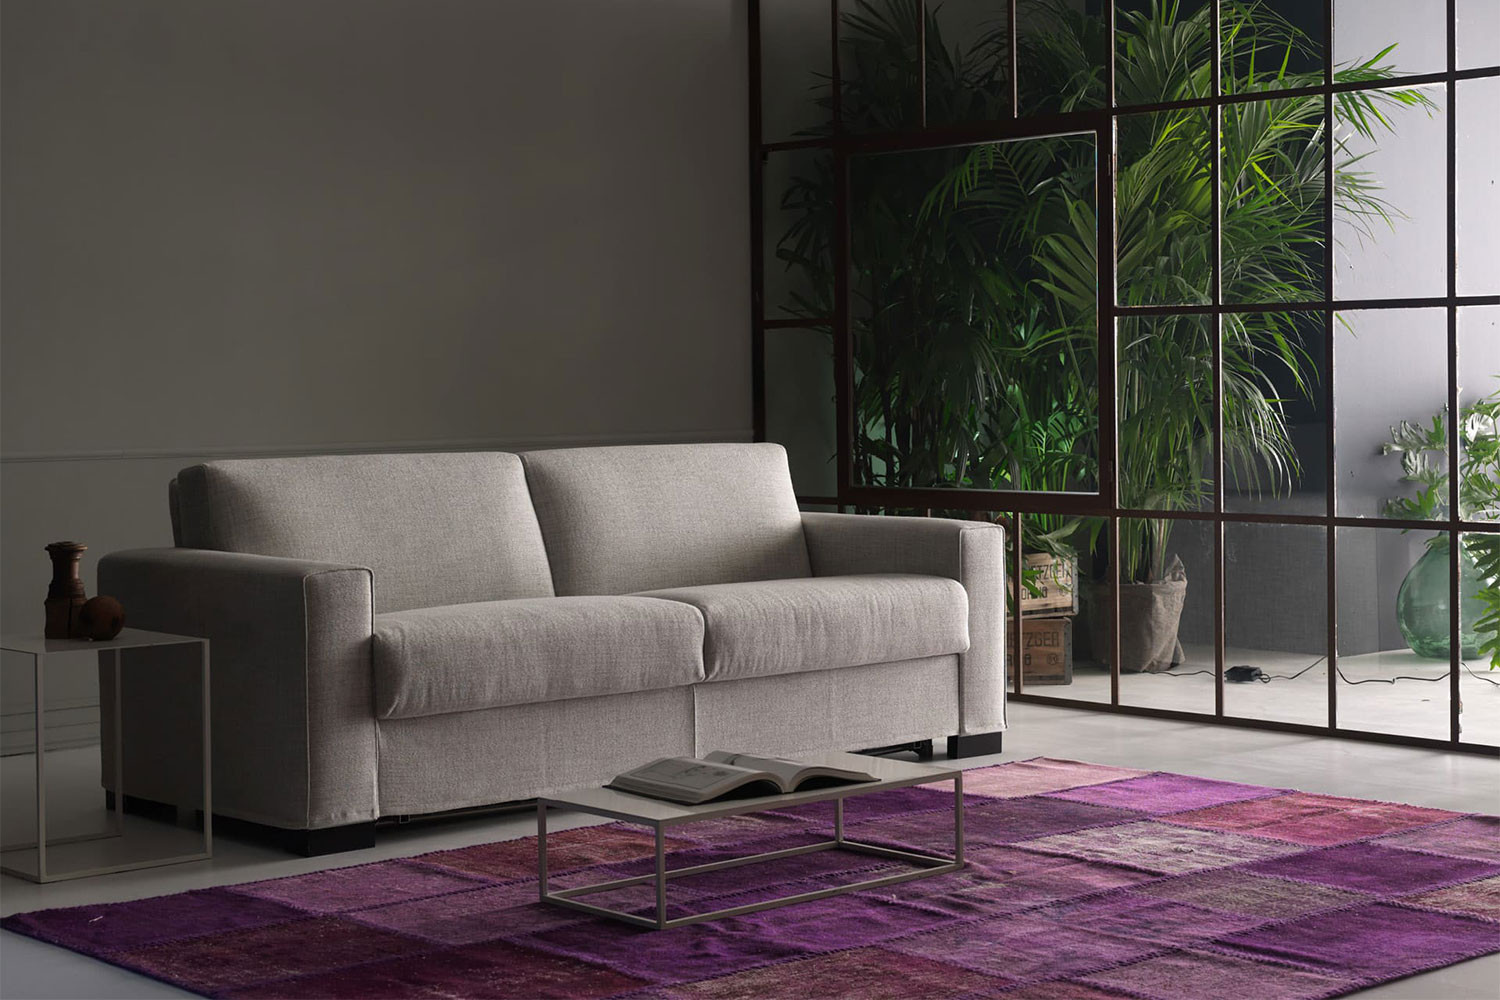 Sectional sofa bed with pocket sprung Simmons mattress